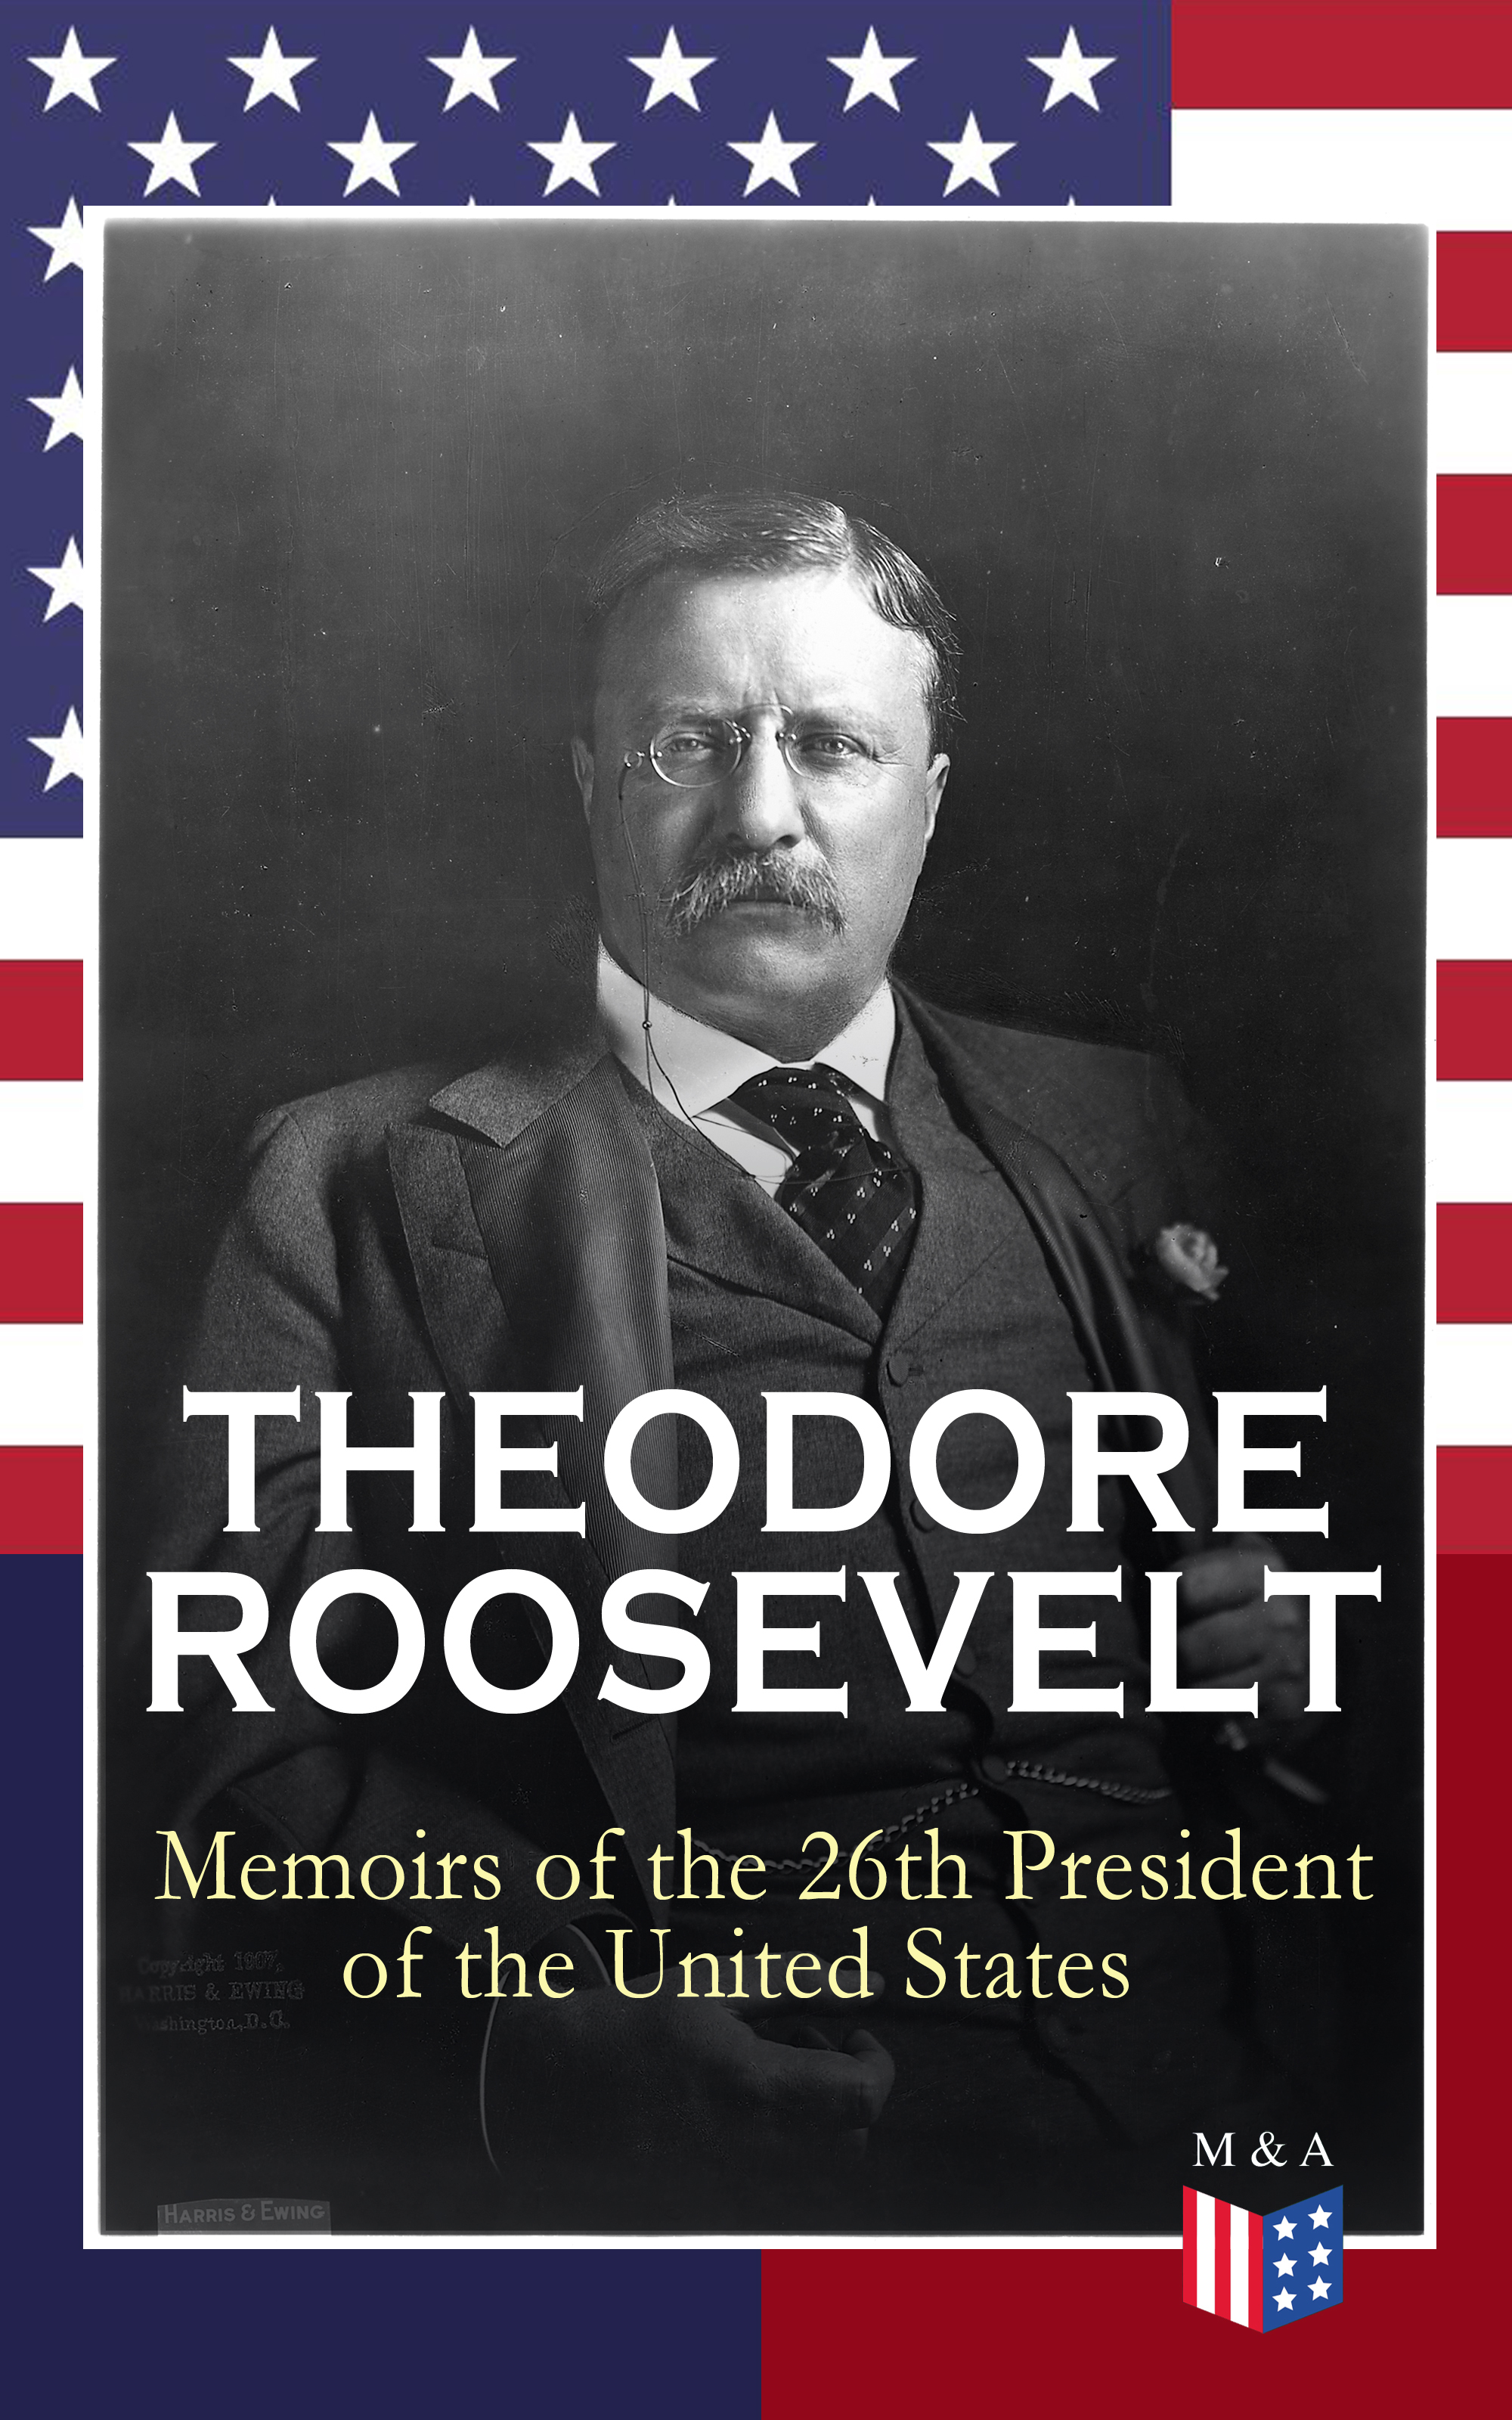 Theodore Roosevelt THEODORE ROOSEVELT - Memoirs of the 26th President of the United States theodore nsoe adimazoya governance of natural resource rents in ghana